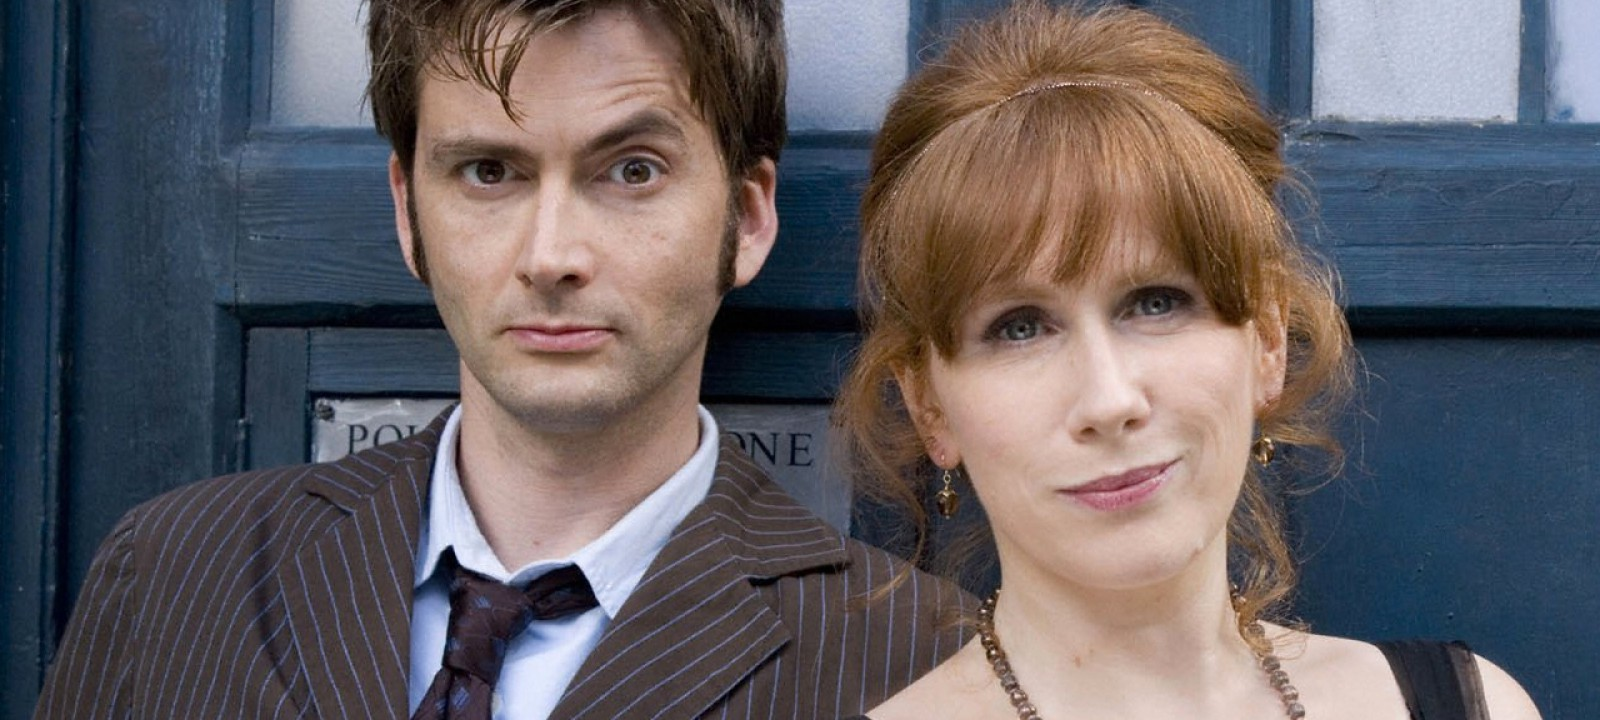 David Tennant and Catherine Tate in 'Doctor Who' (Photo: BBC)